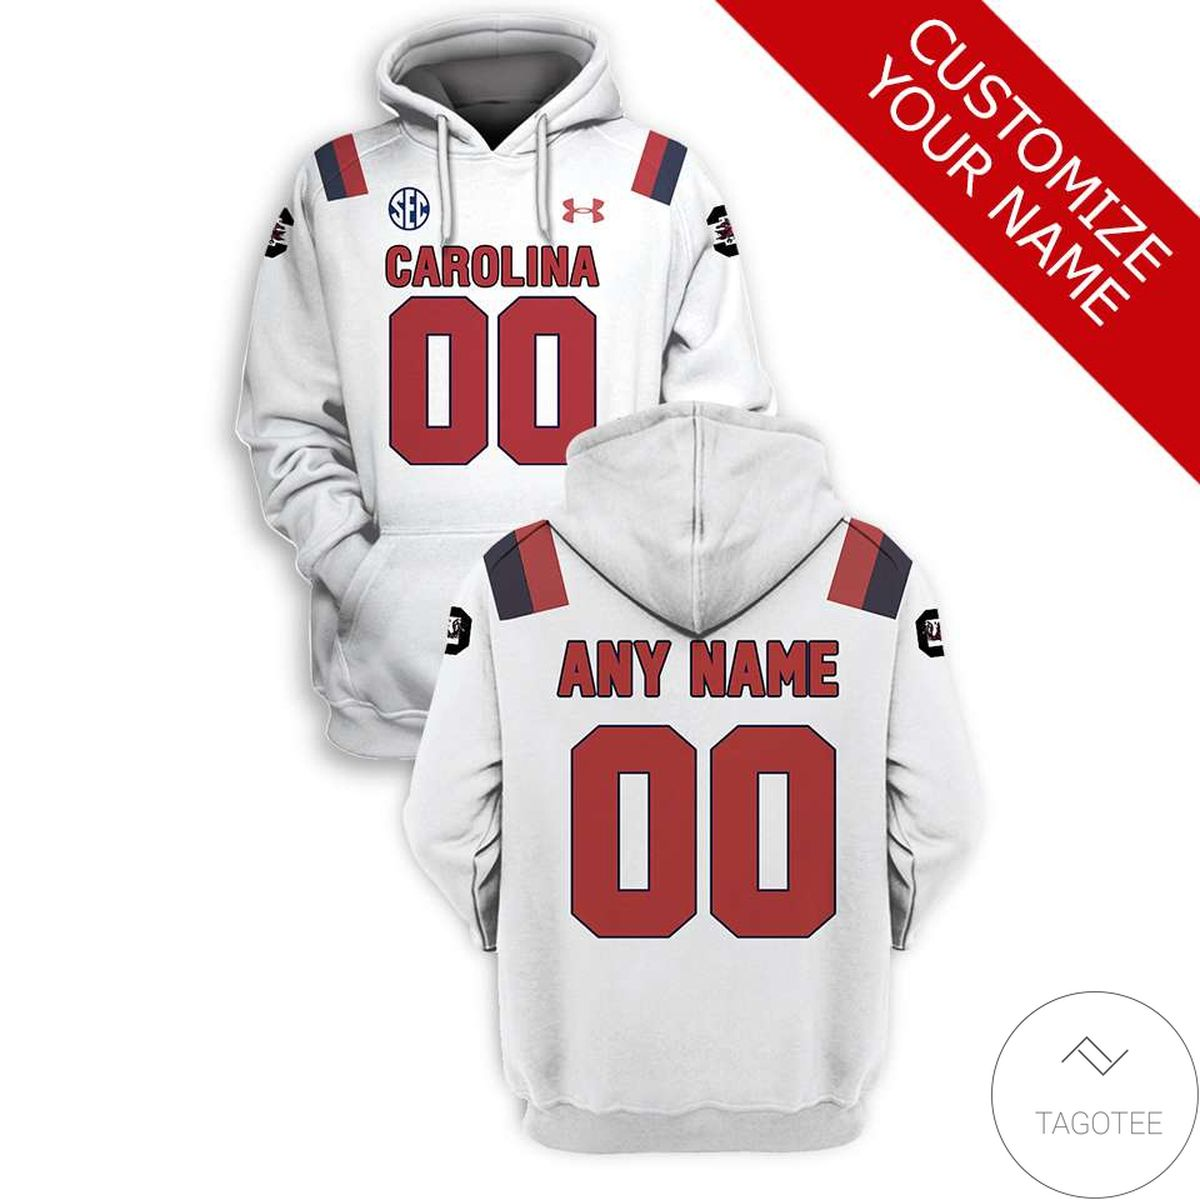 Buy In US Personalized South Carolina Gamecocks Branded Team Unisex 3d Hoodie